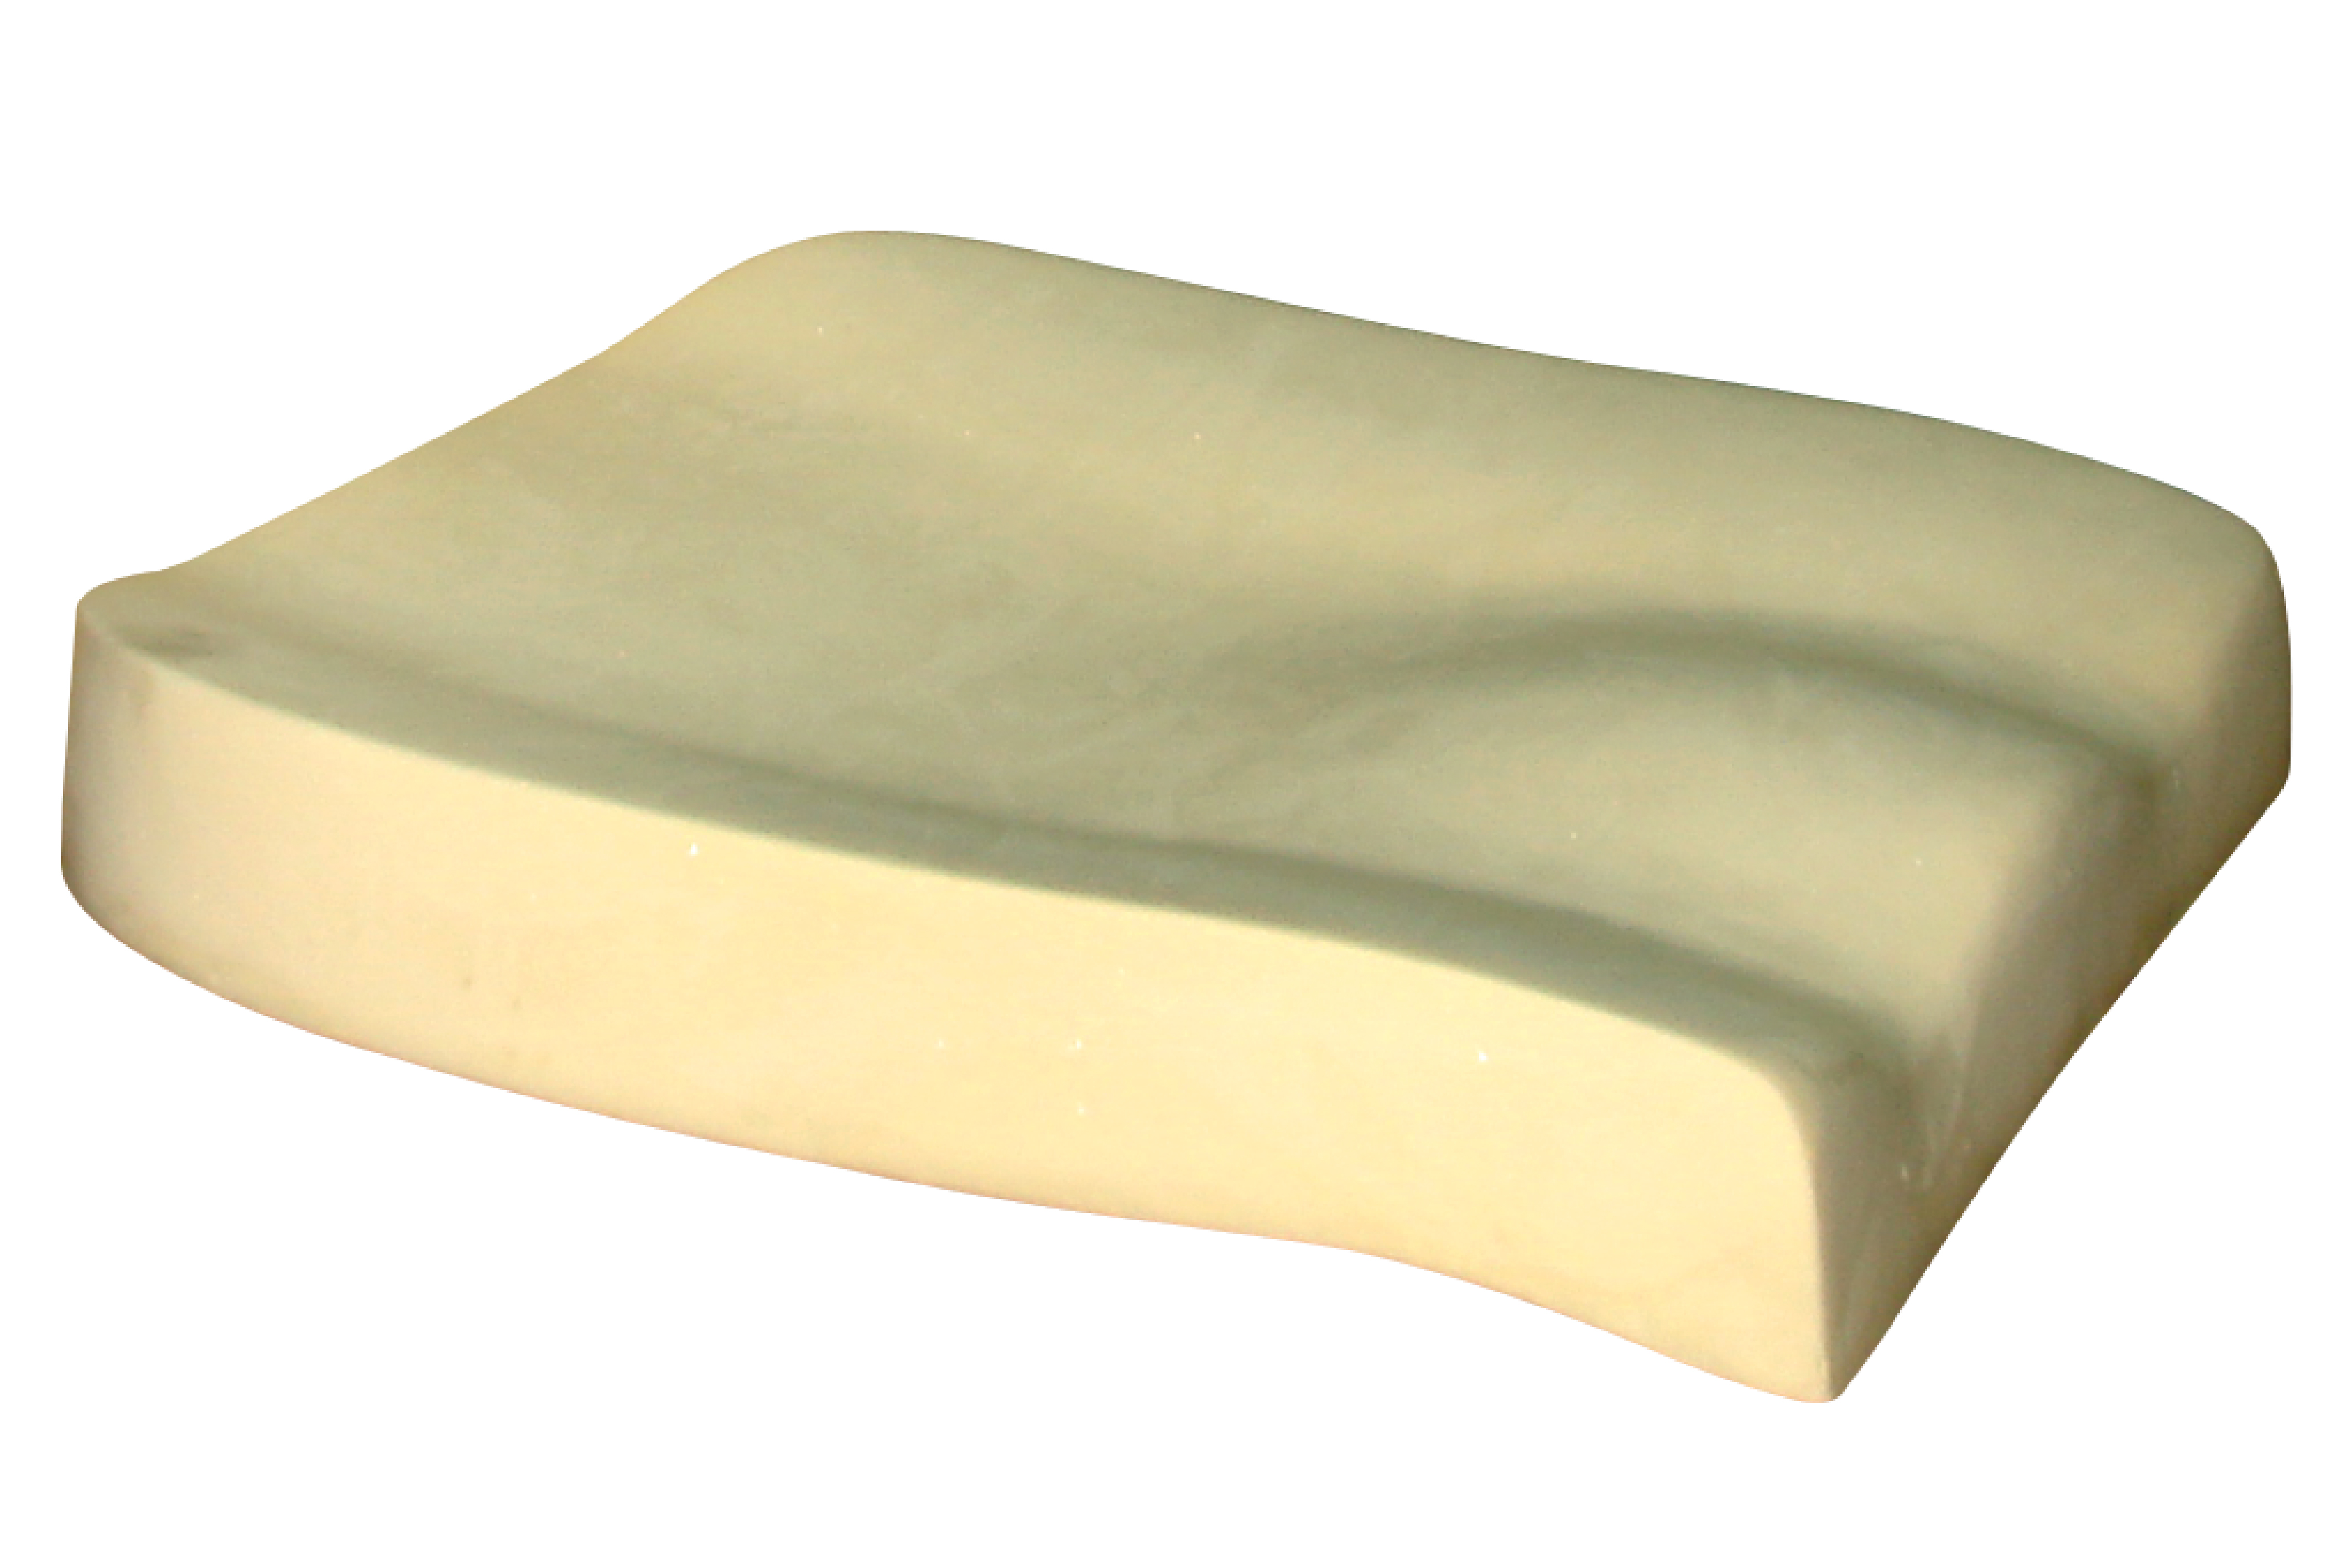 High Density Upholstery Foam for Best Cushions Material Ideas: High Density Upholstery Foam | High Density Foam Rubber Sheet | Upholstery Foam Blocks